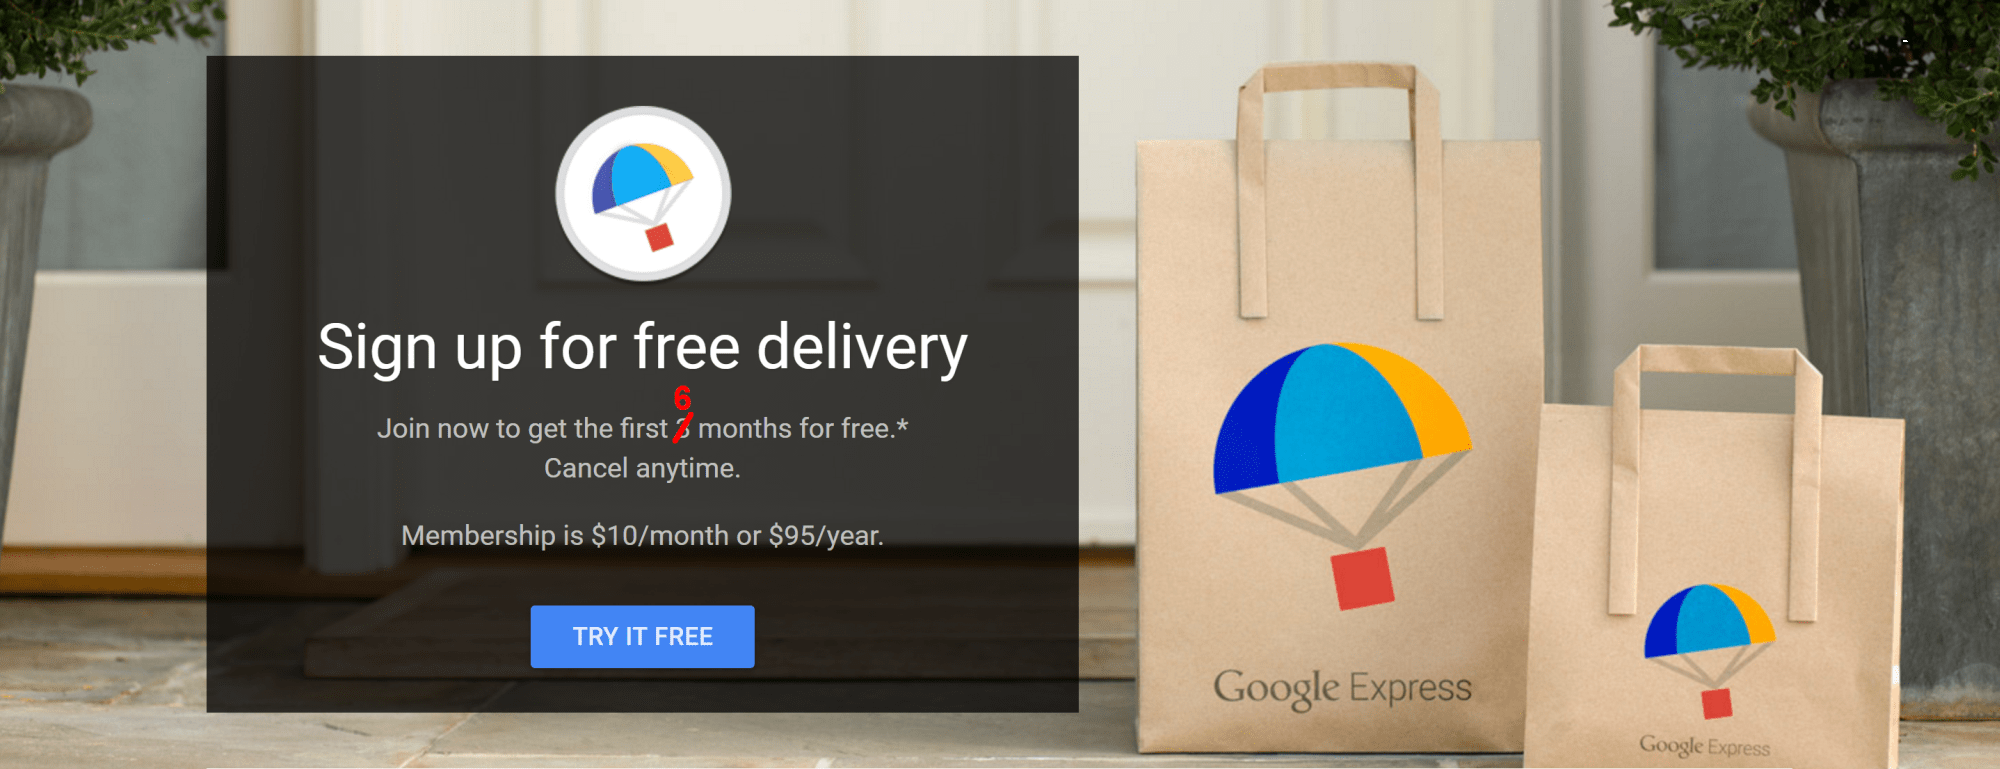 Today Only: Google Express Free Six-Month Trial (12/15/16)